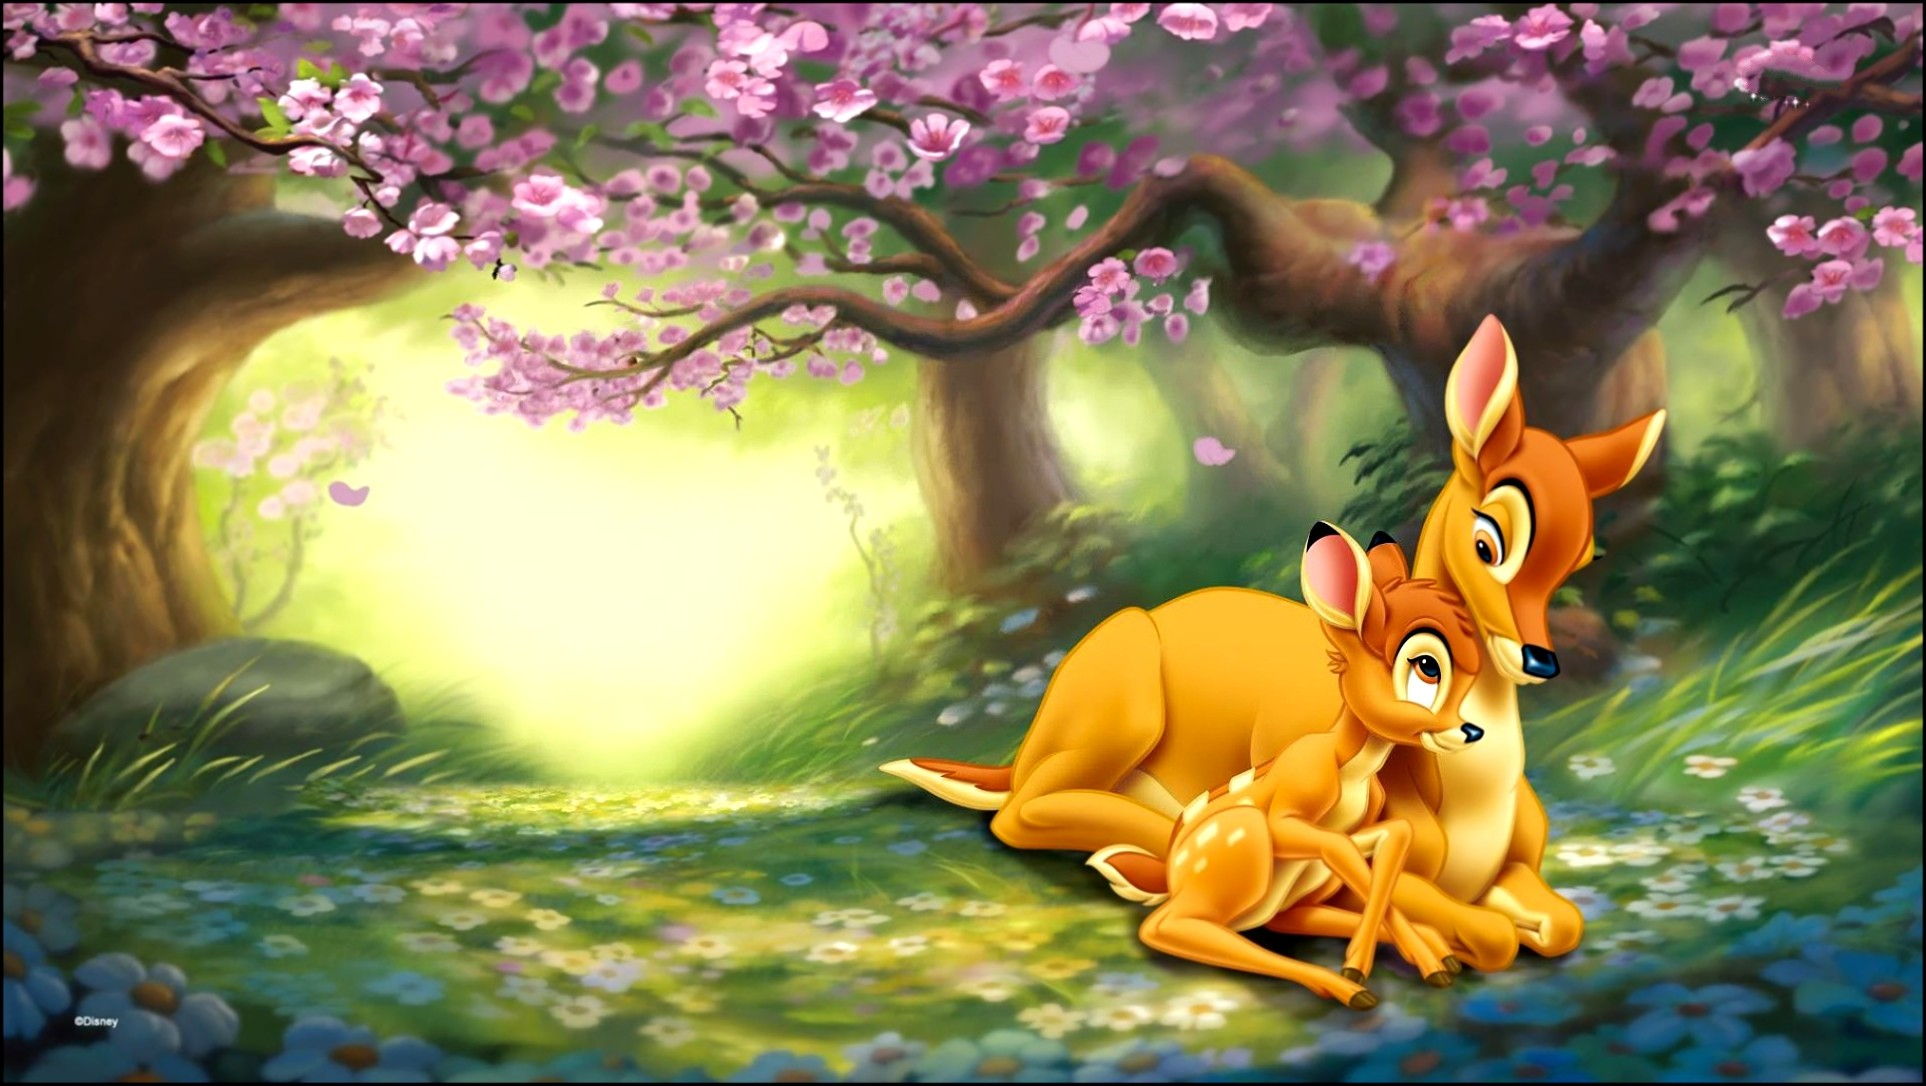 Res: 1926x1086, Bambi Background Free Download.